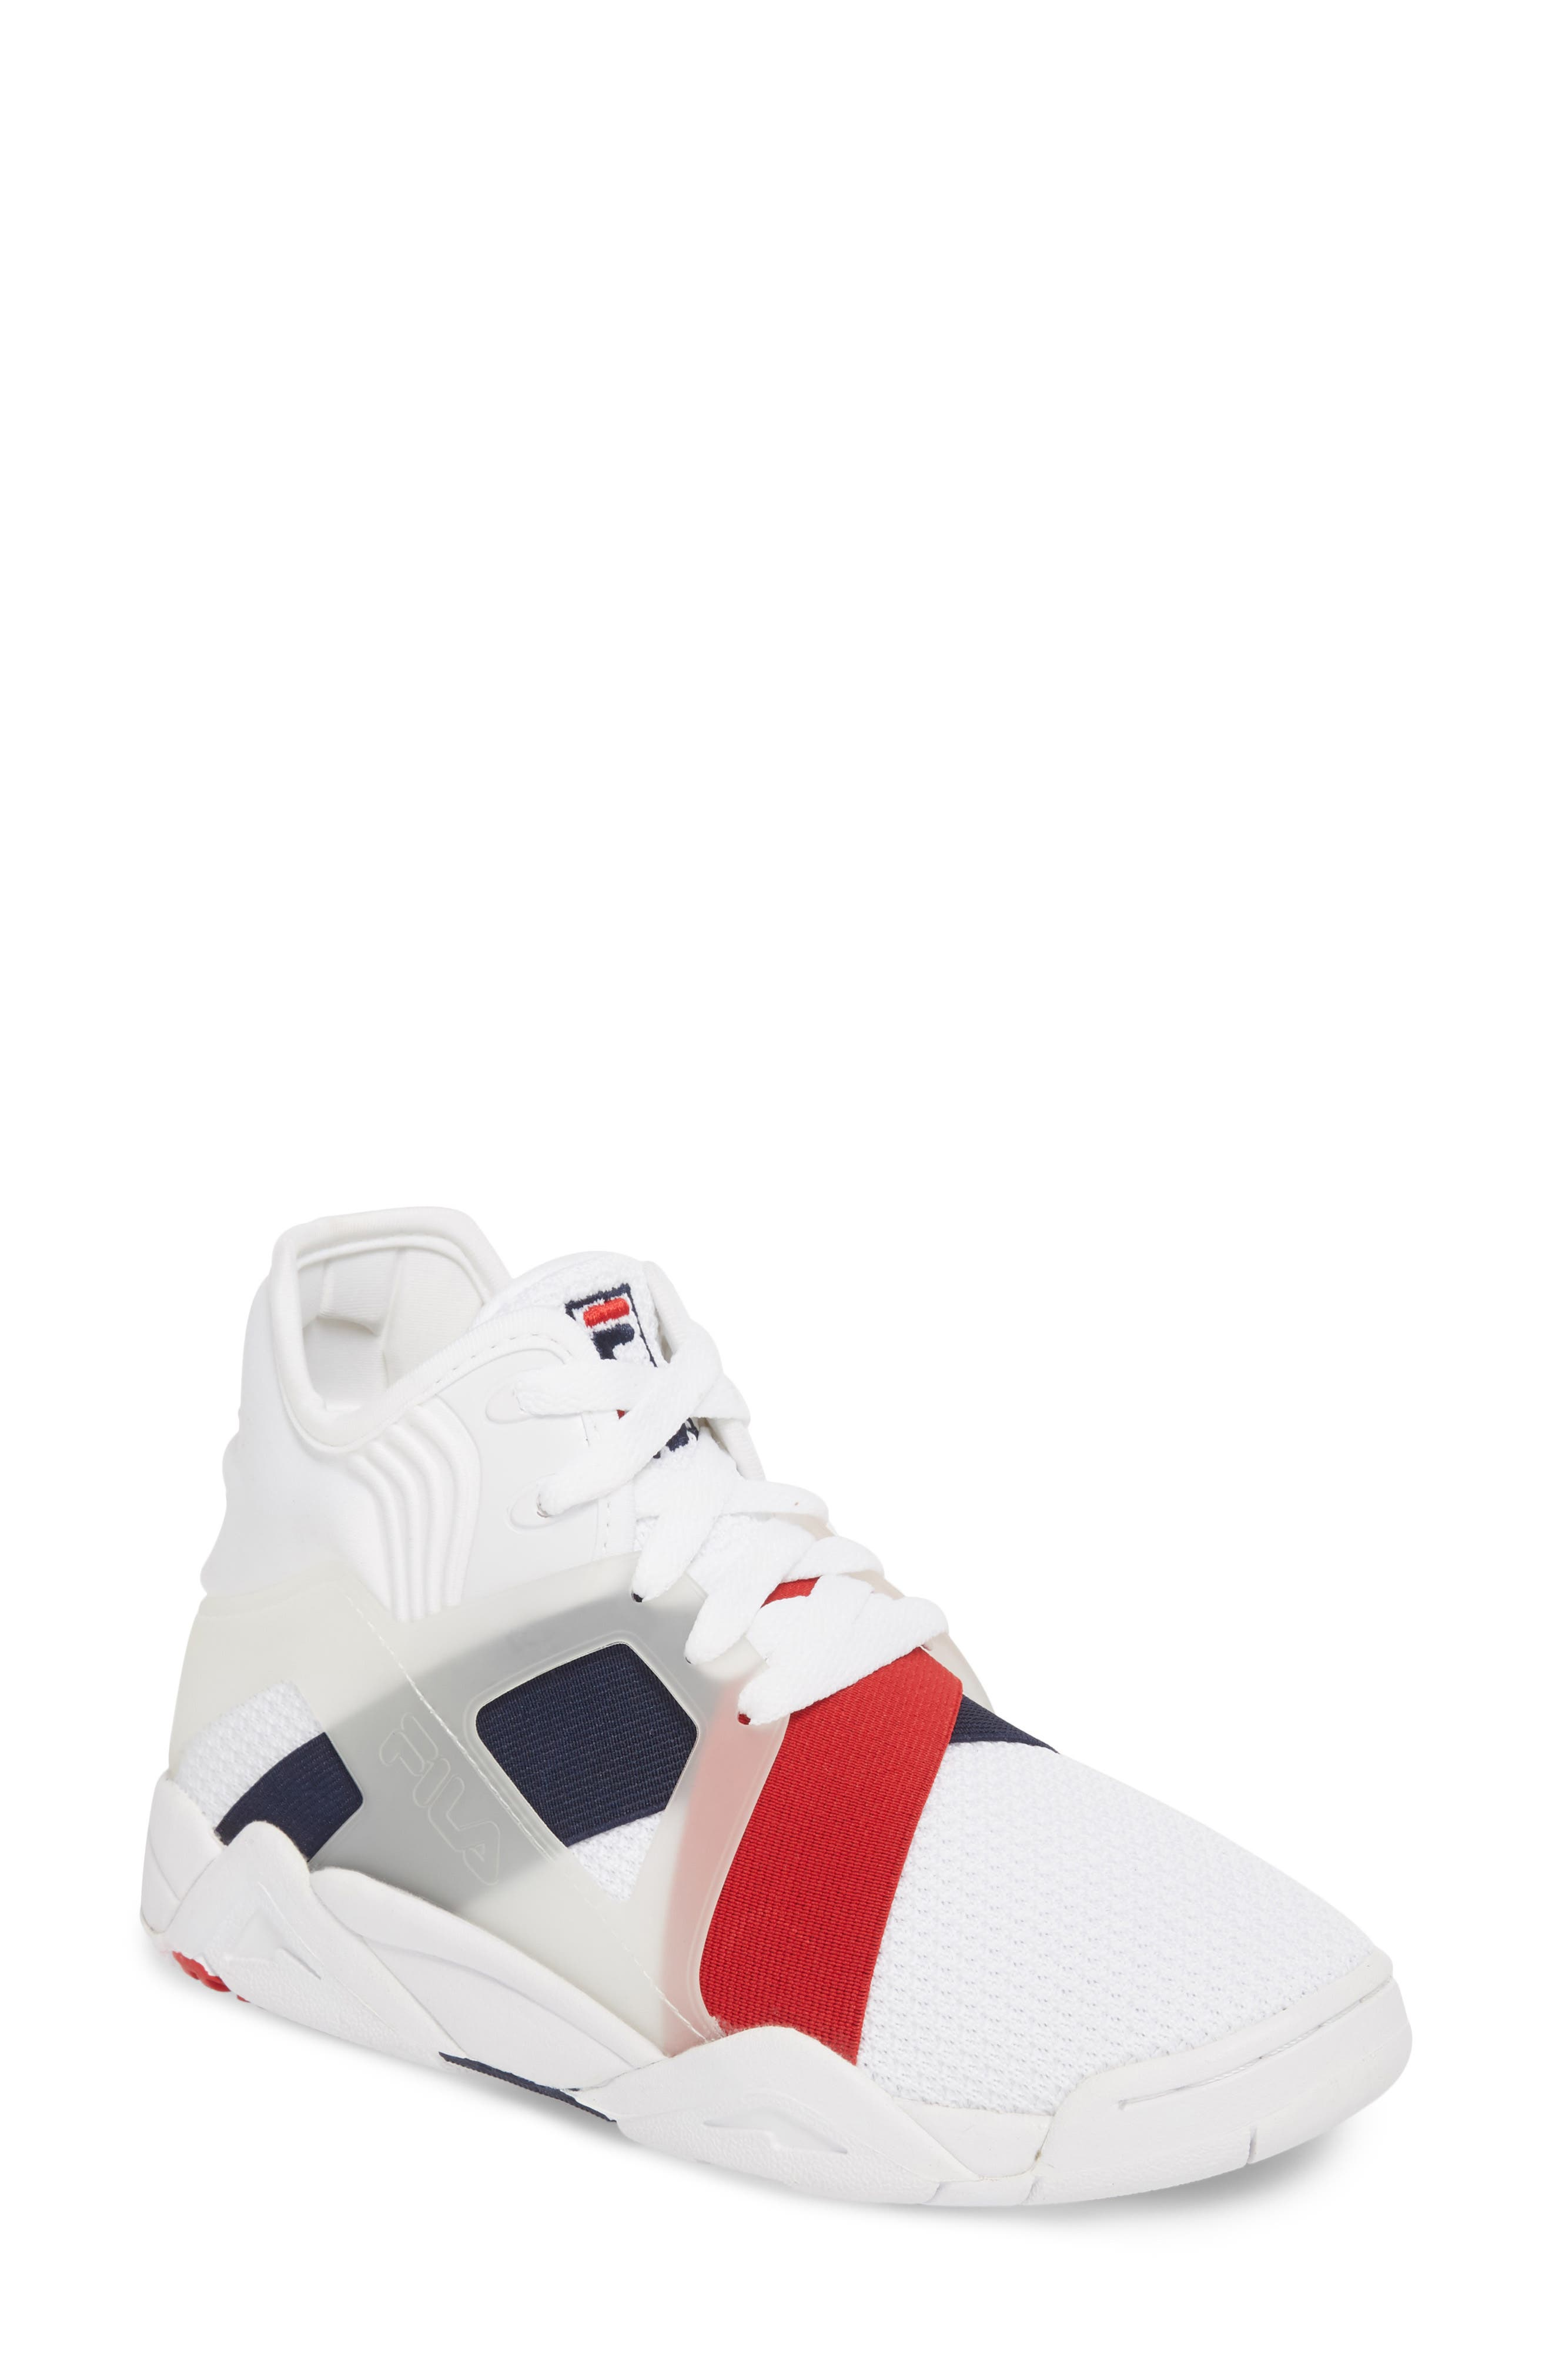 FILA Cage 17 High Top Sneaker (Women)